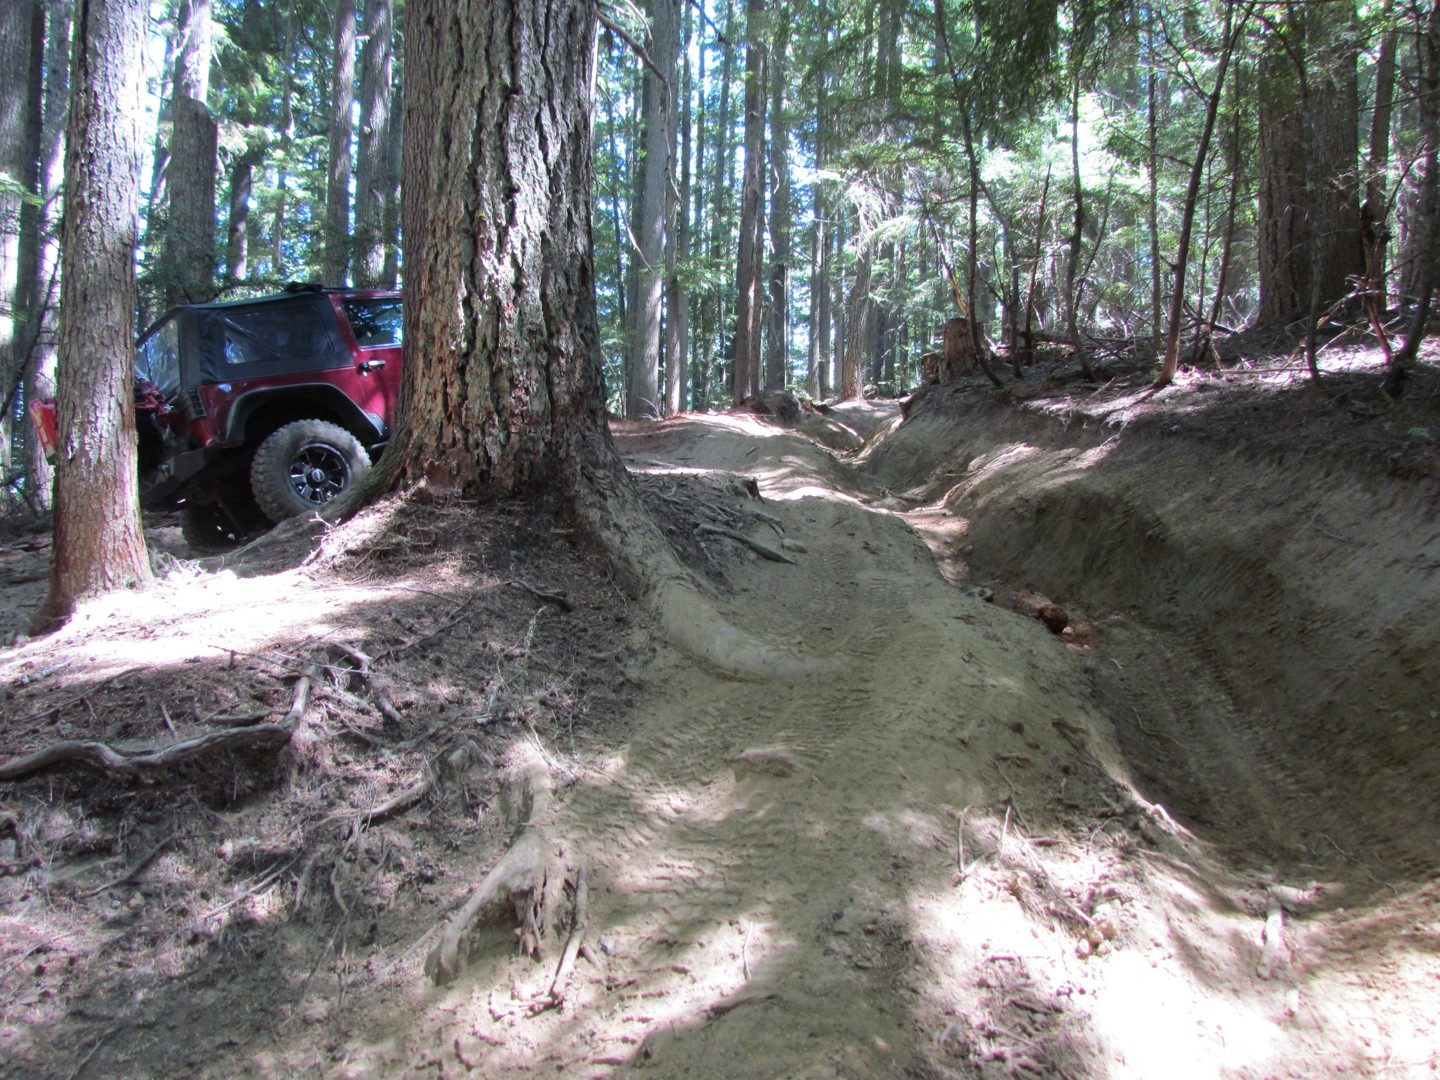 Naches Trail - Waypoint 2: Ditch Obsticle